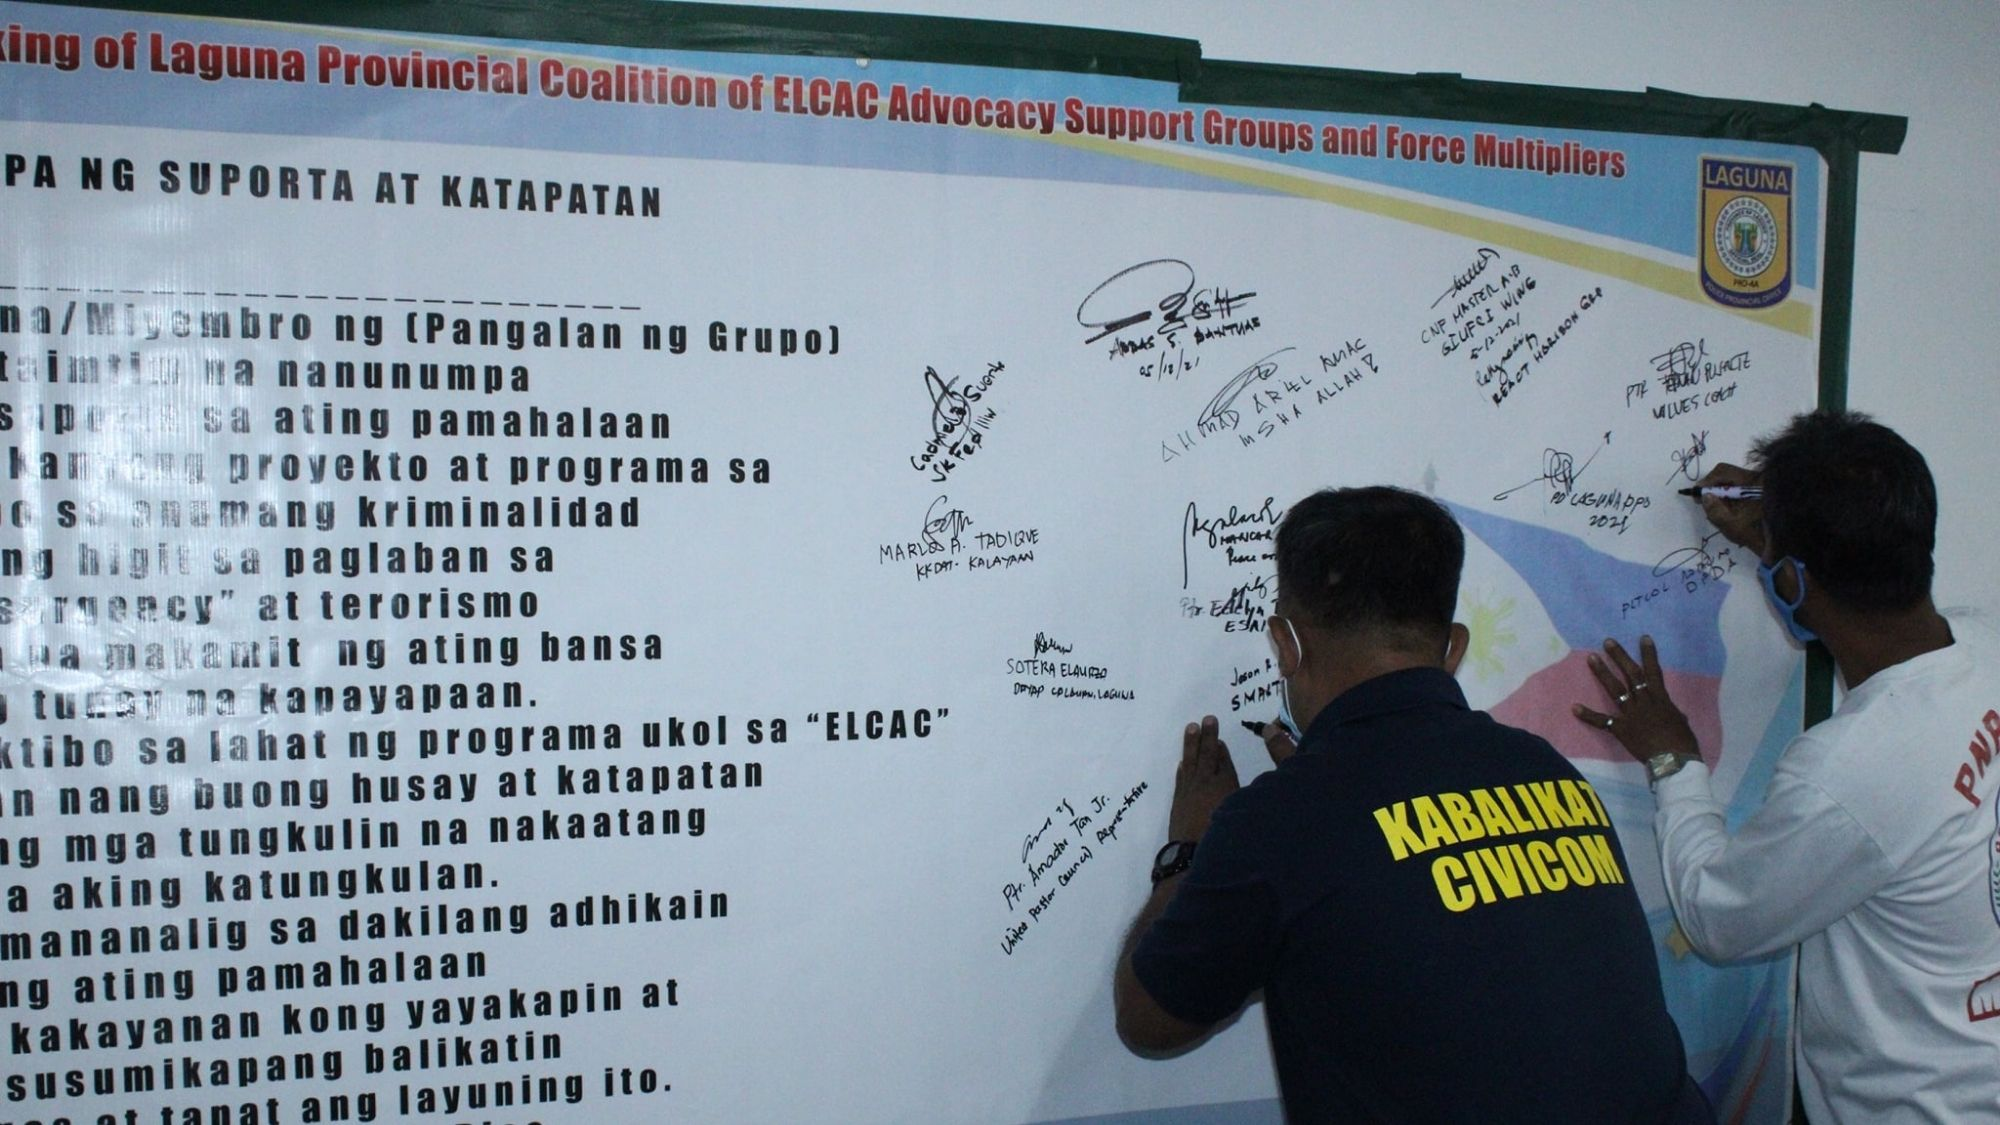 62 support groups in Laguna pledge support to NTF-ELCAC